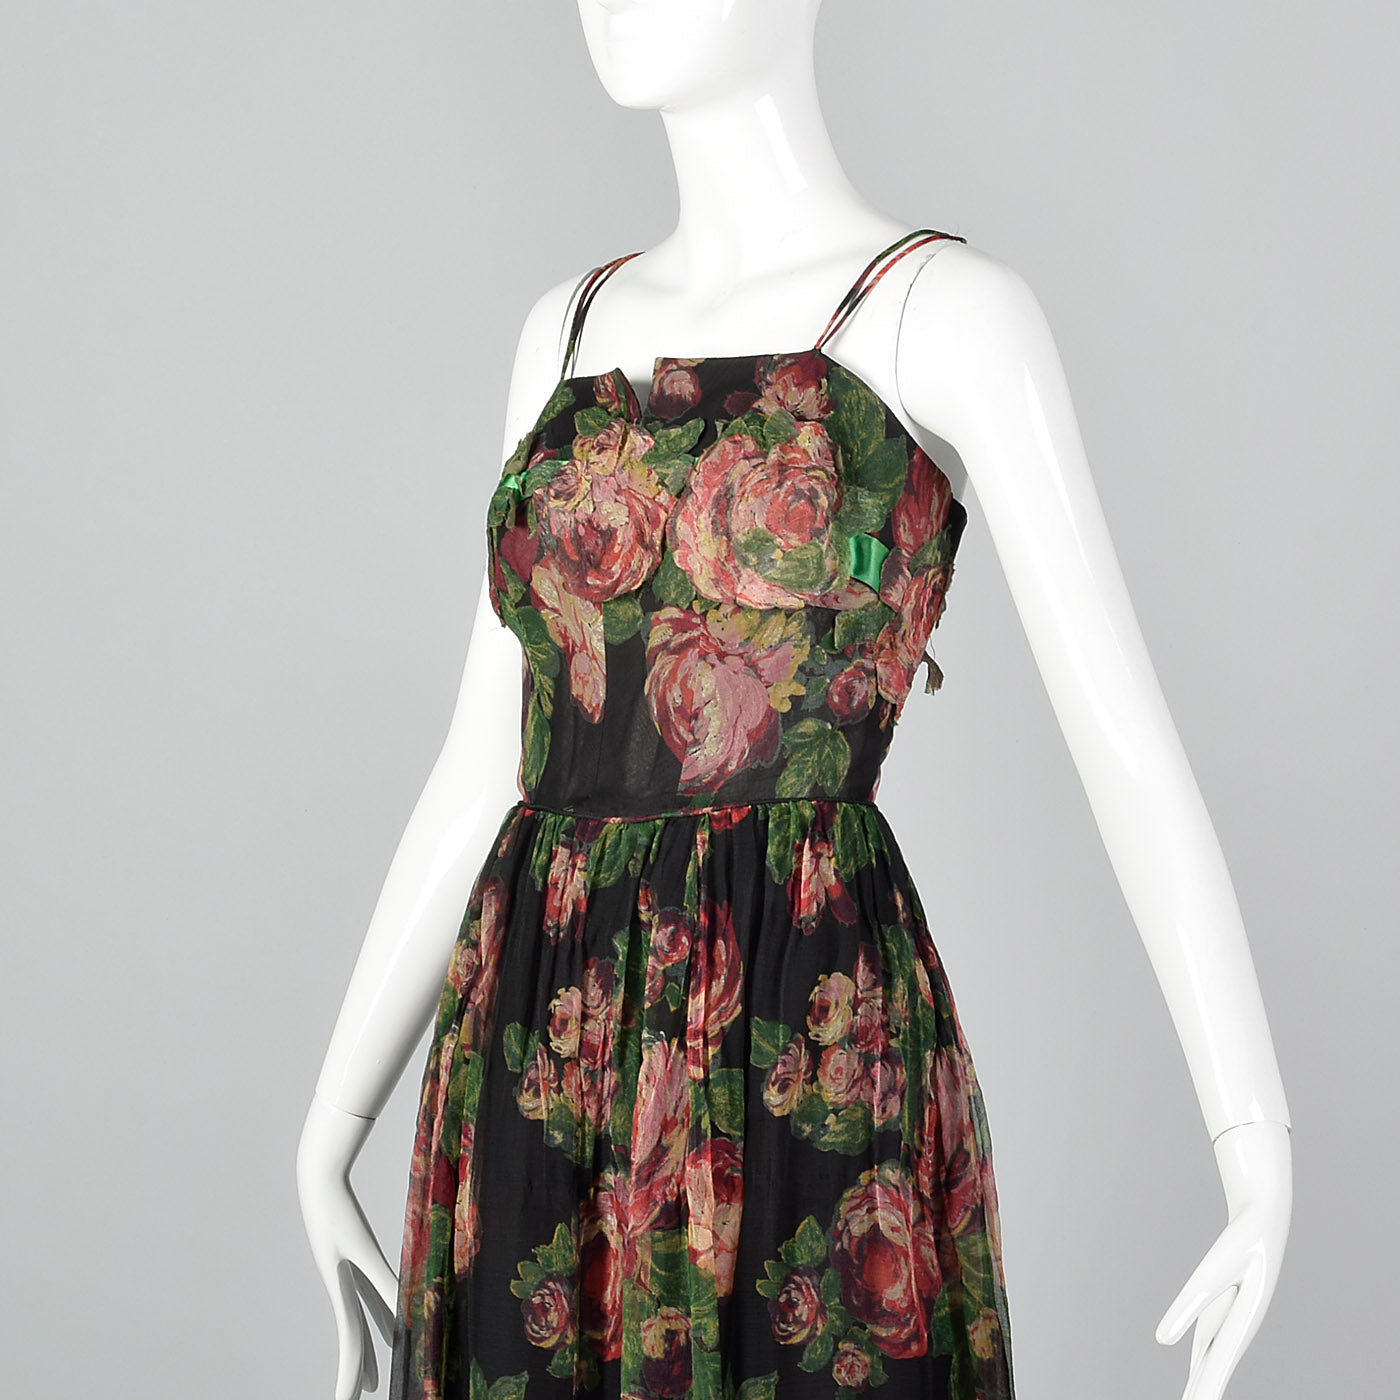 1960s Floral Evening Gown with Floral Applique Bust